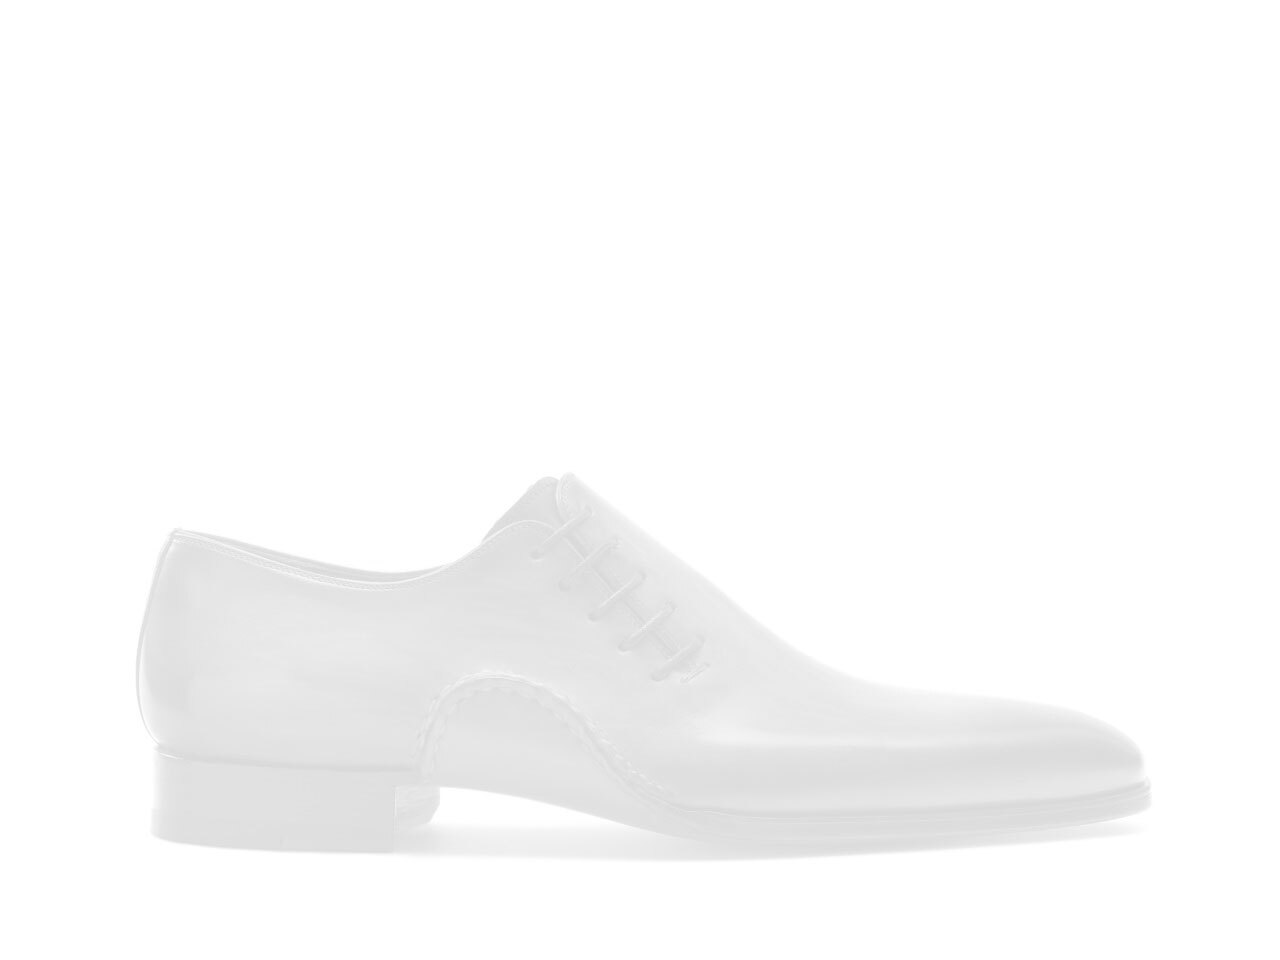 A pair of Magnanni Brooklyn Canela high-top sneakers